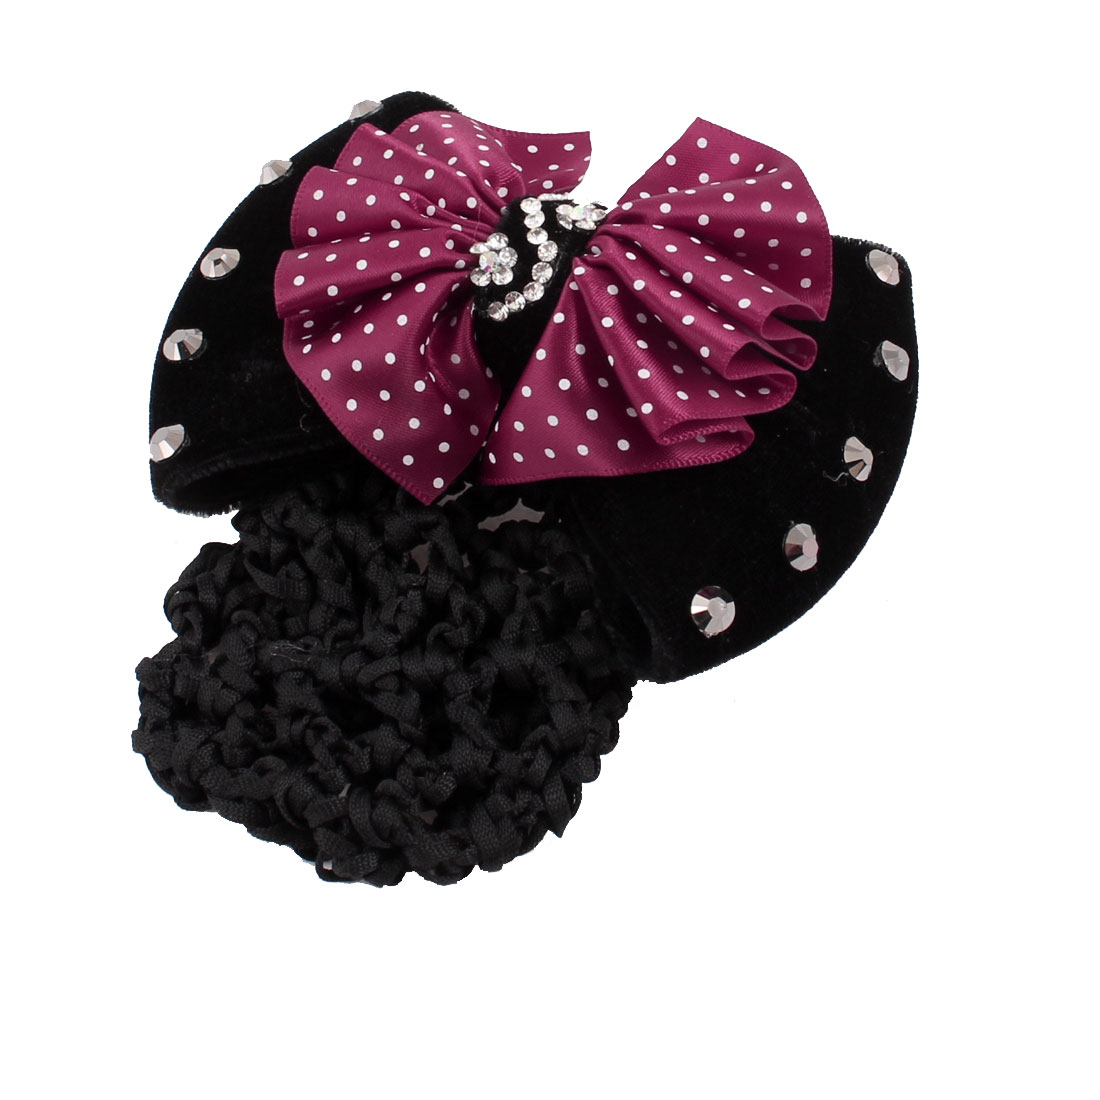 Lady Black Burgundy Double Bow Tie Detail French Barrette Hair Clip w Snood Net